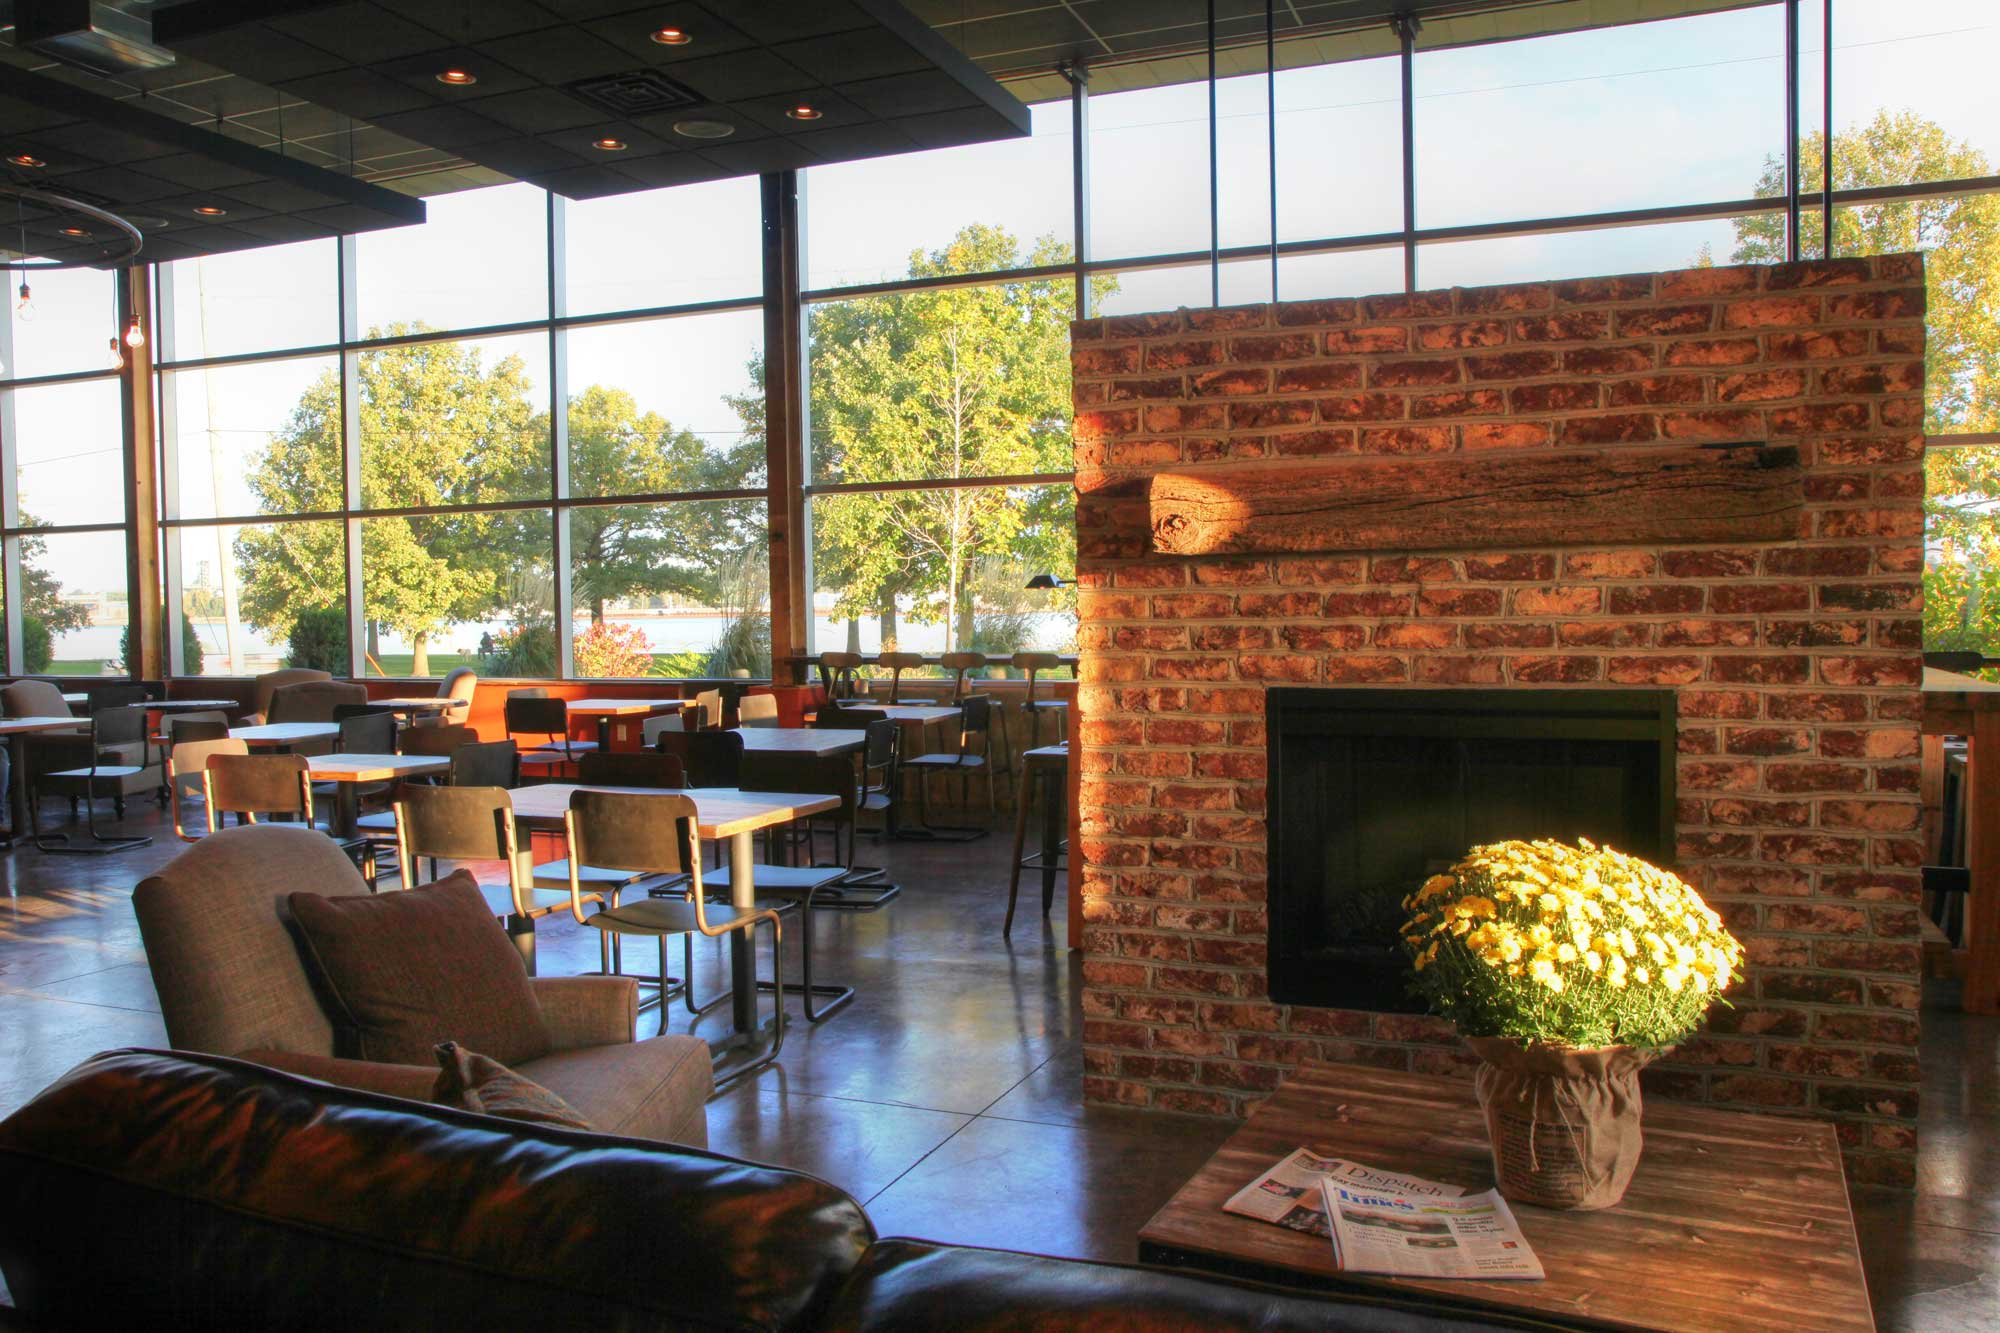 Feature of Milltown Coffee lounge area with fireplace